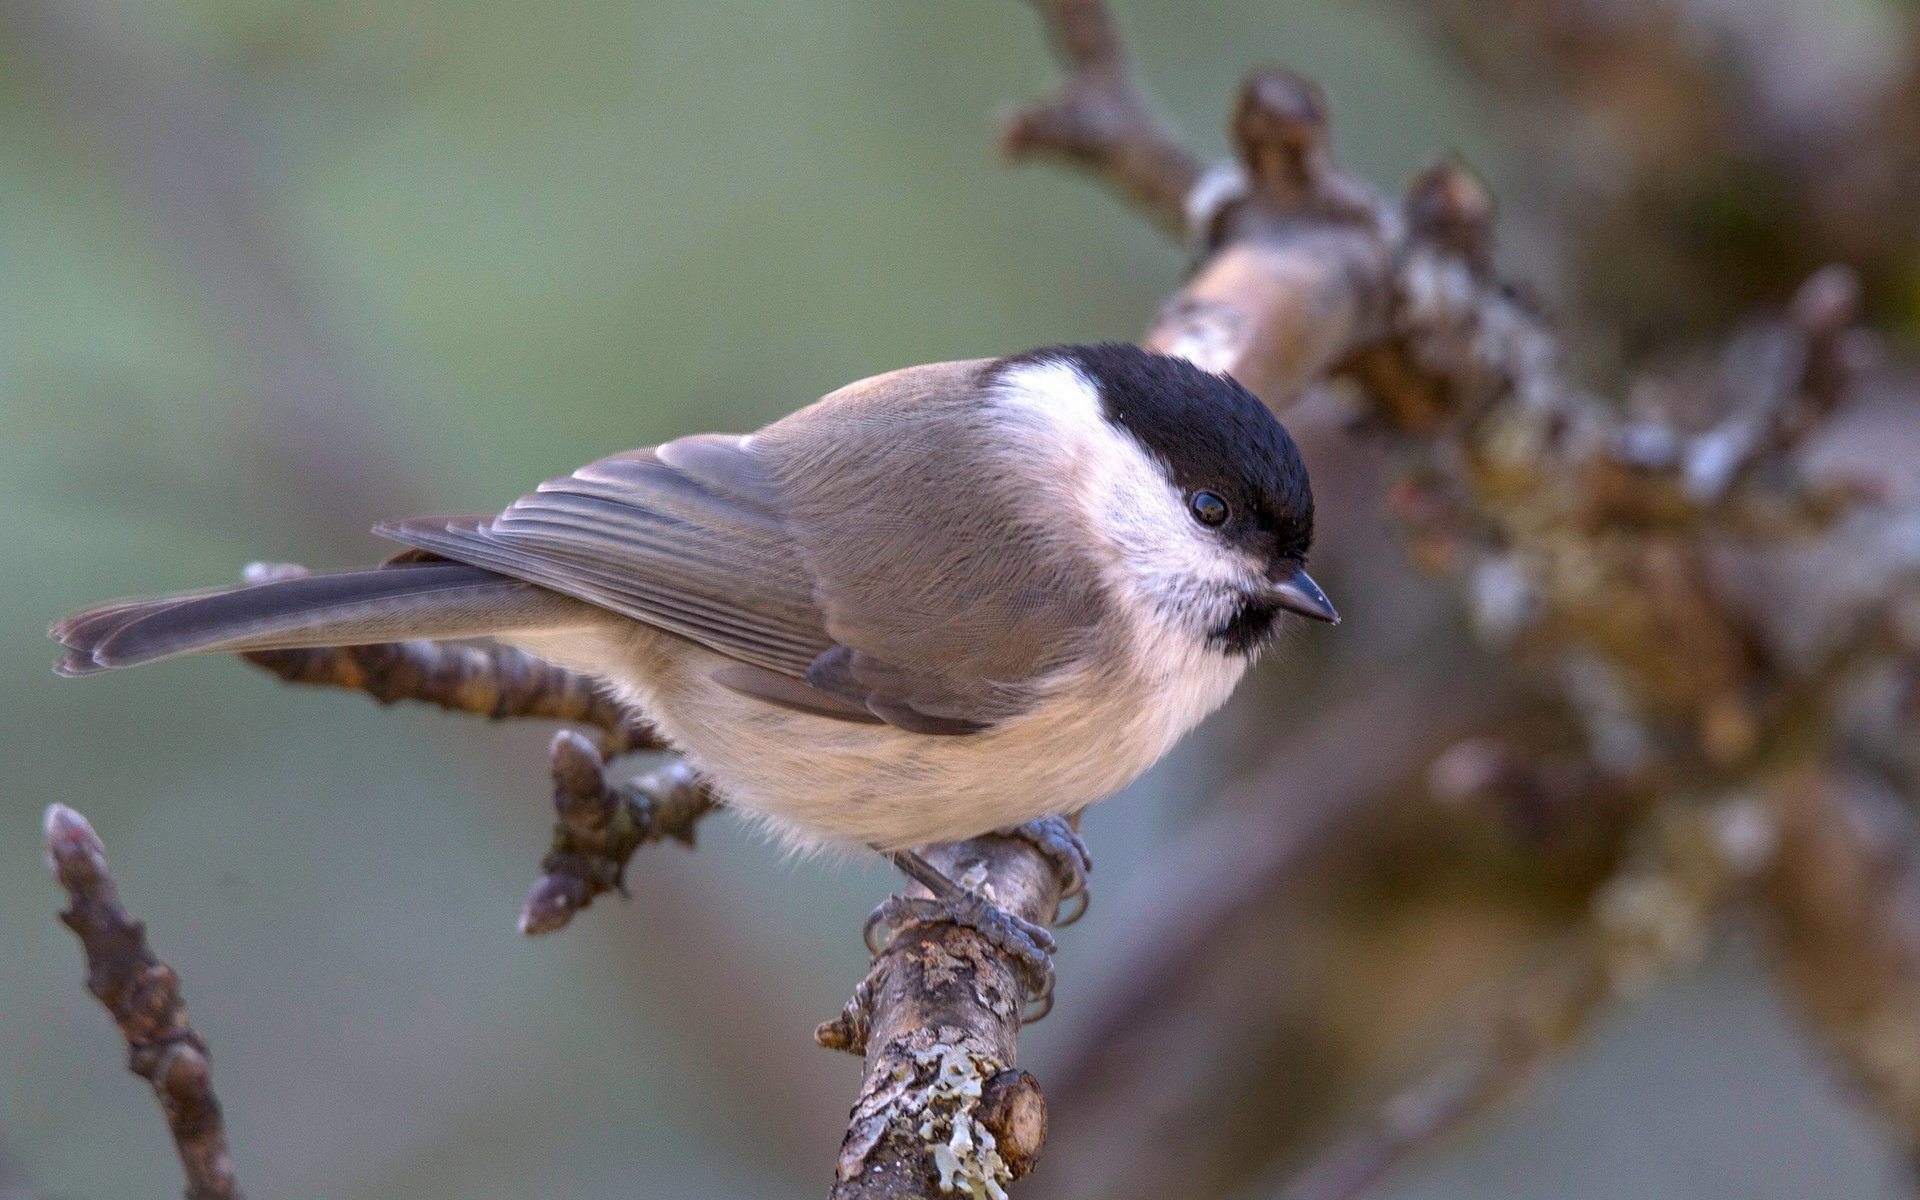 Willow Tit Hd Wallpaper  Background Image  1920X1200 -8771